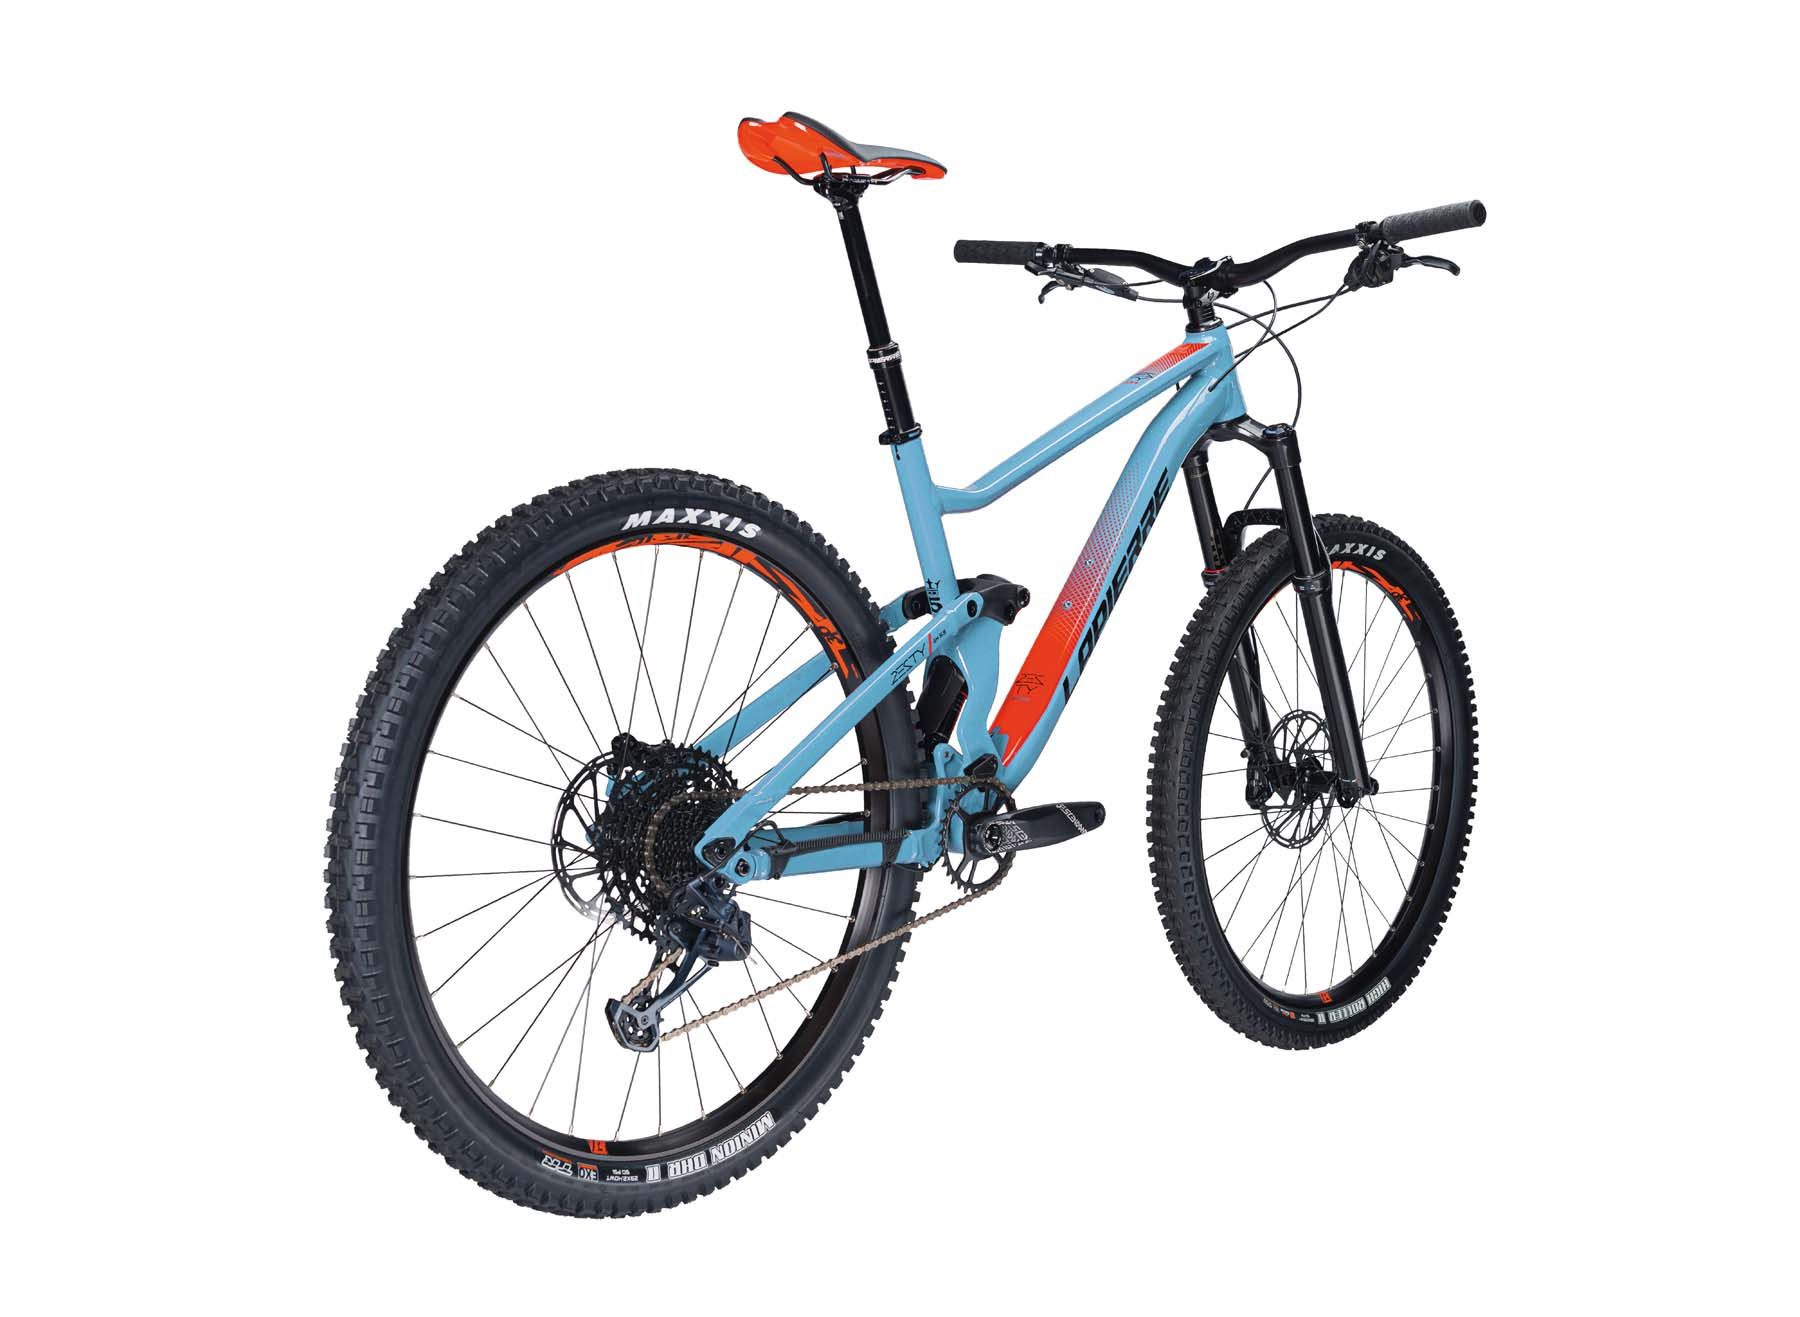 Lapierre Zesty AM 5.9 2021 All-Mountain Bike 2